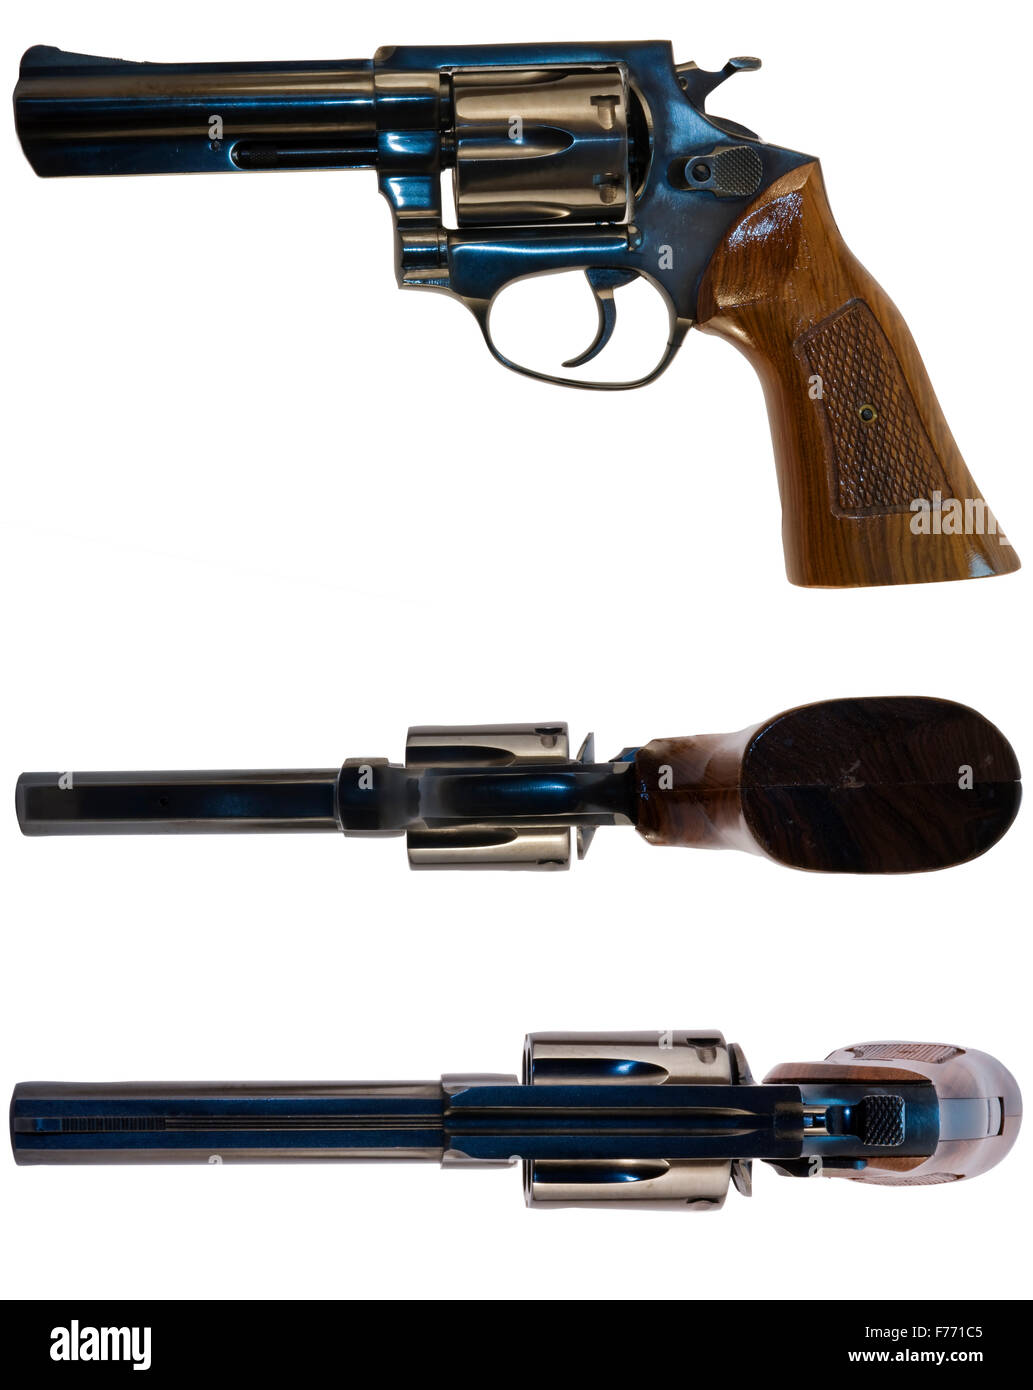 Three Guns for the Price of One - Stock Image